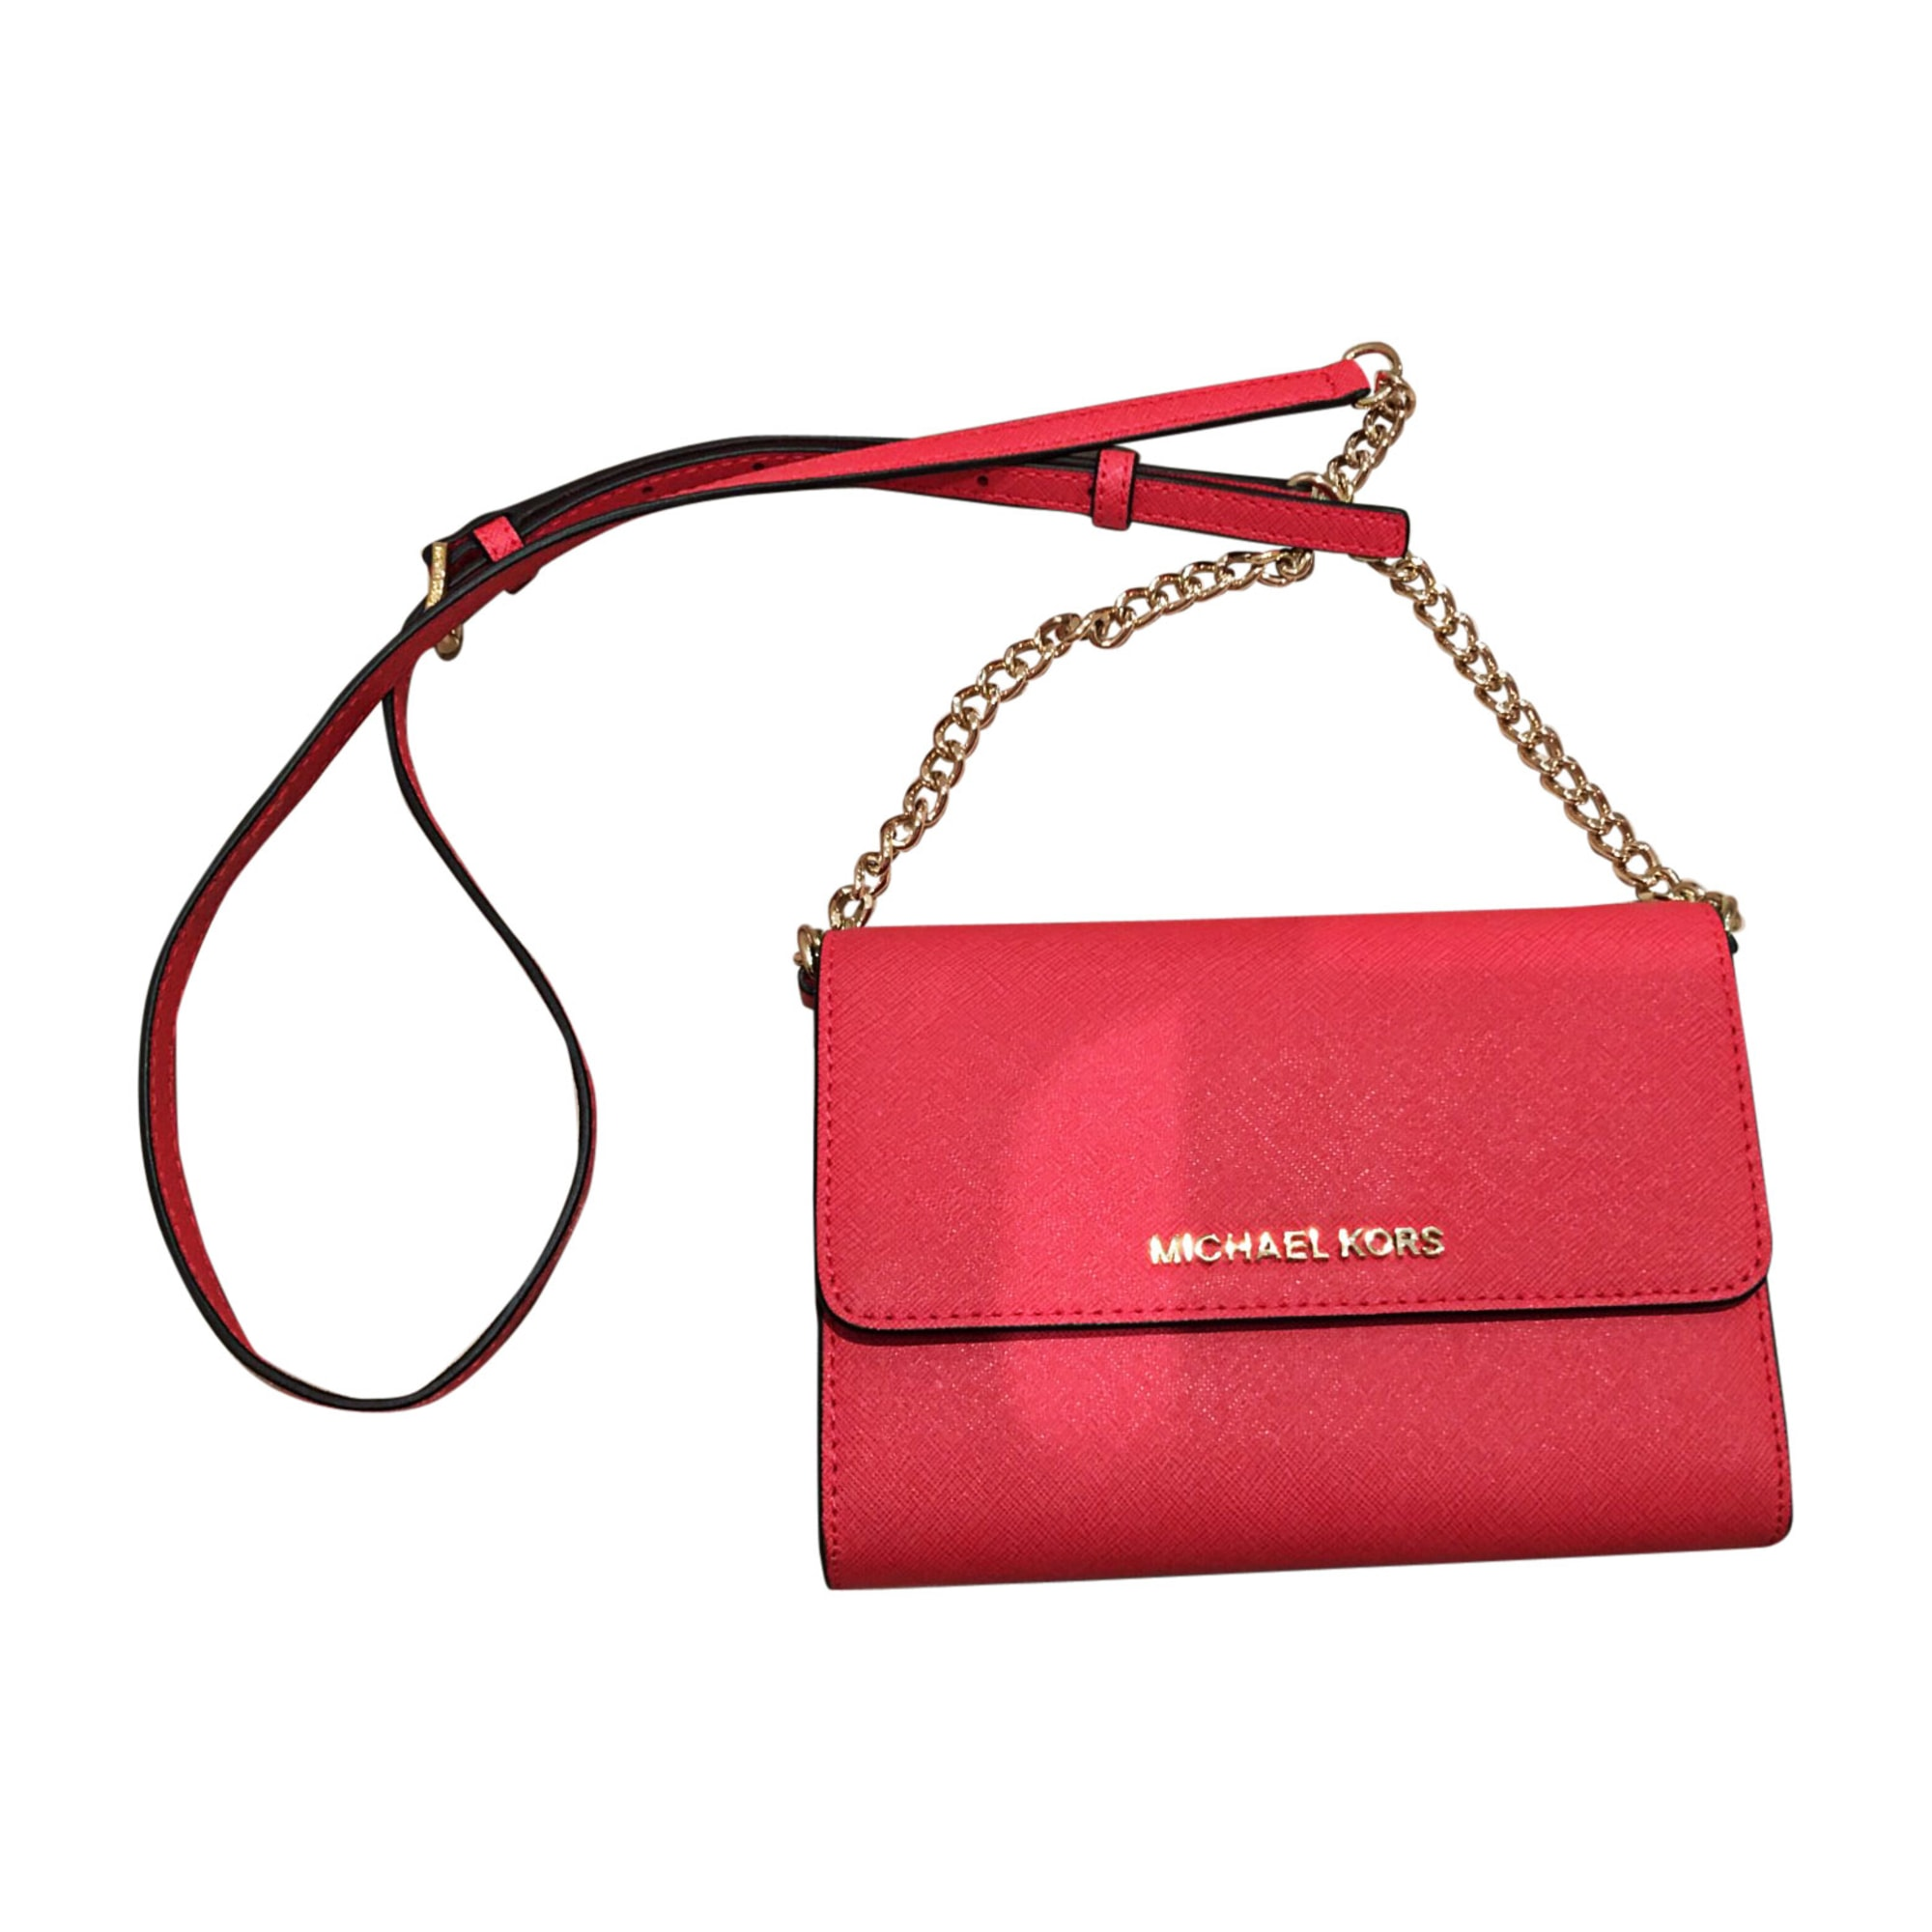 sac pochette michael kors bordeau